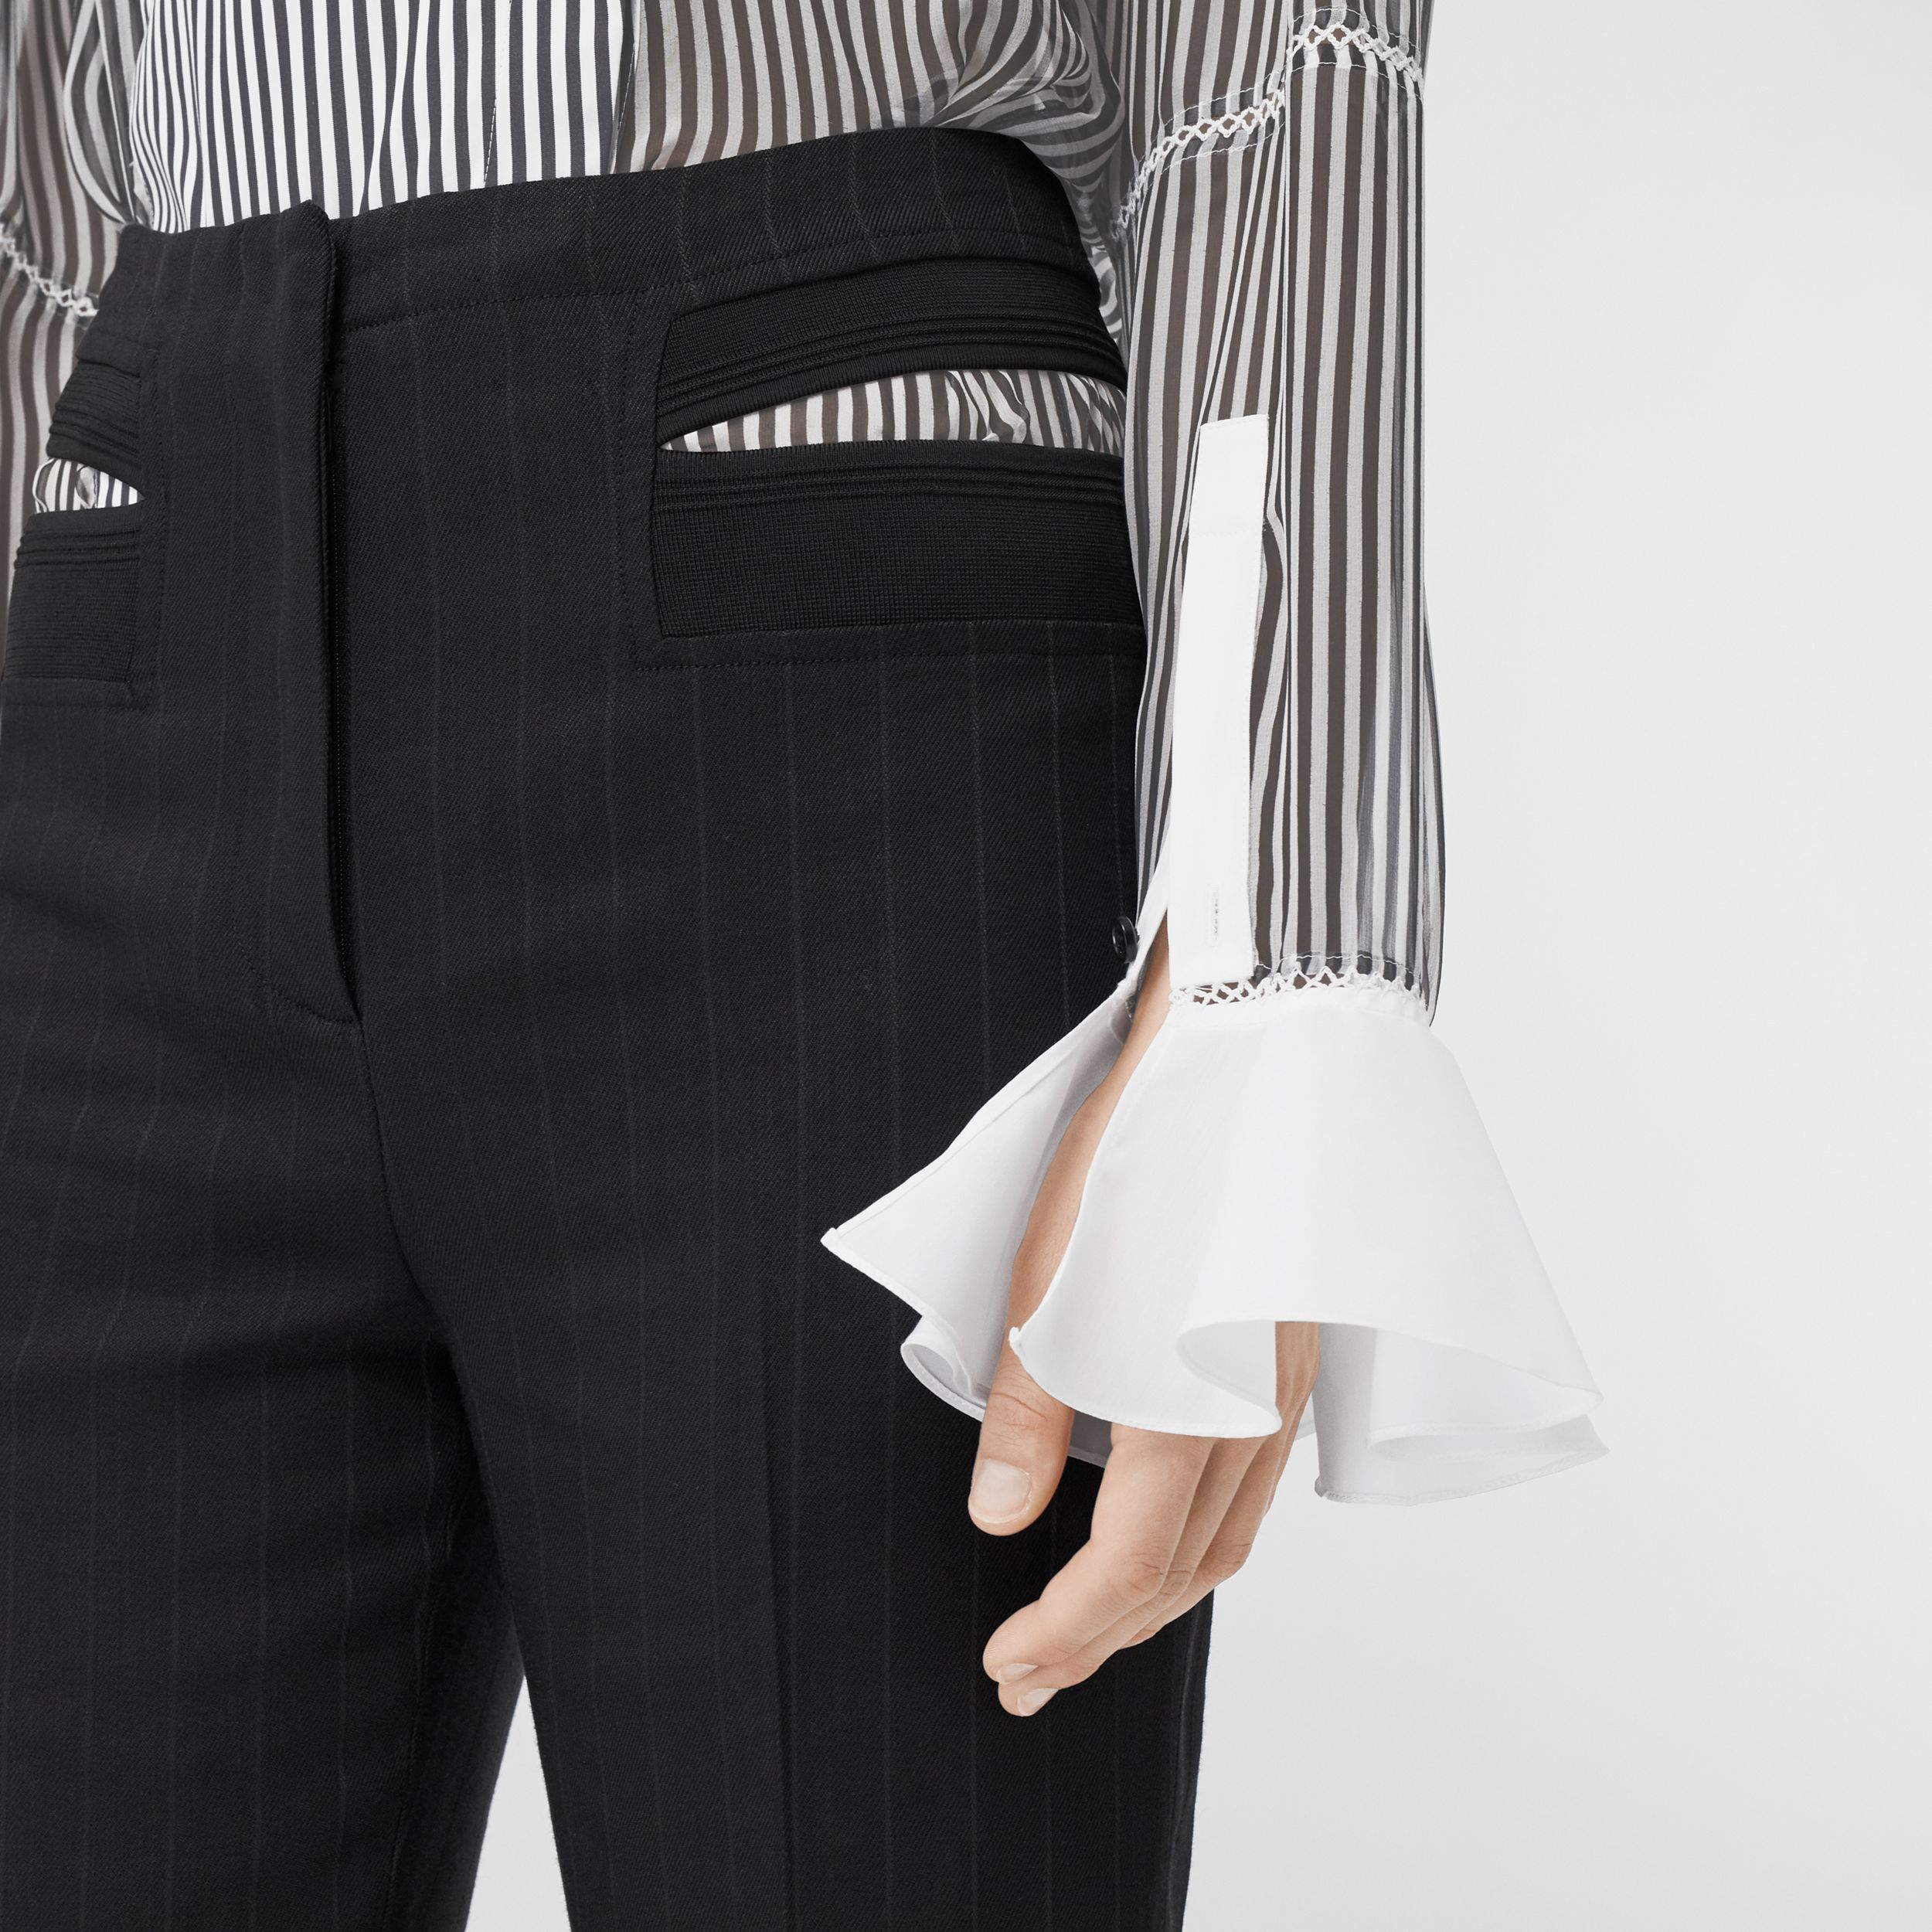 Ruffle Detail Striped Silk Chiffon Shirt in Black - Women | Burberry Australia - 2